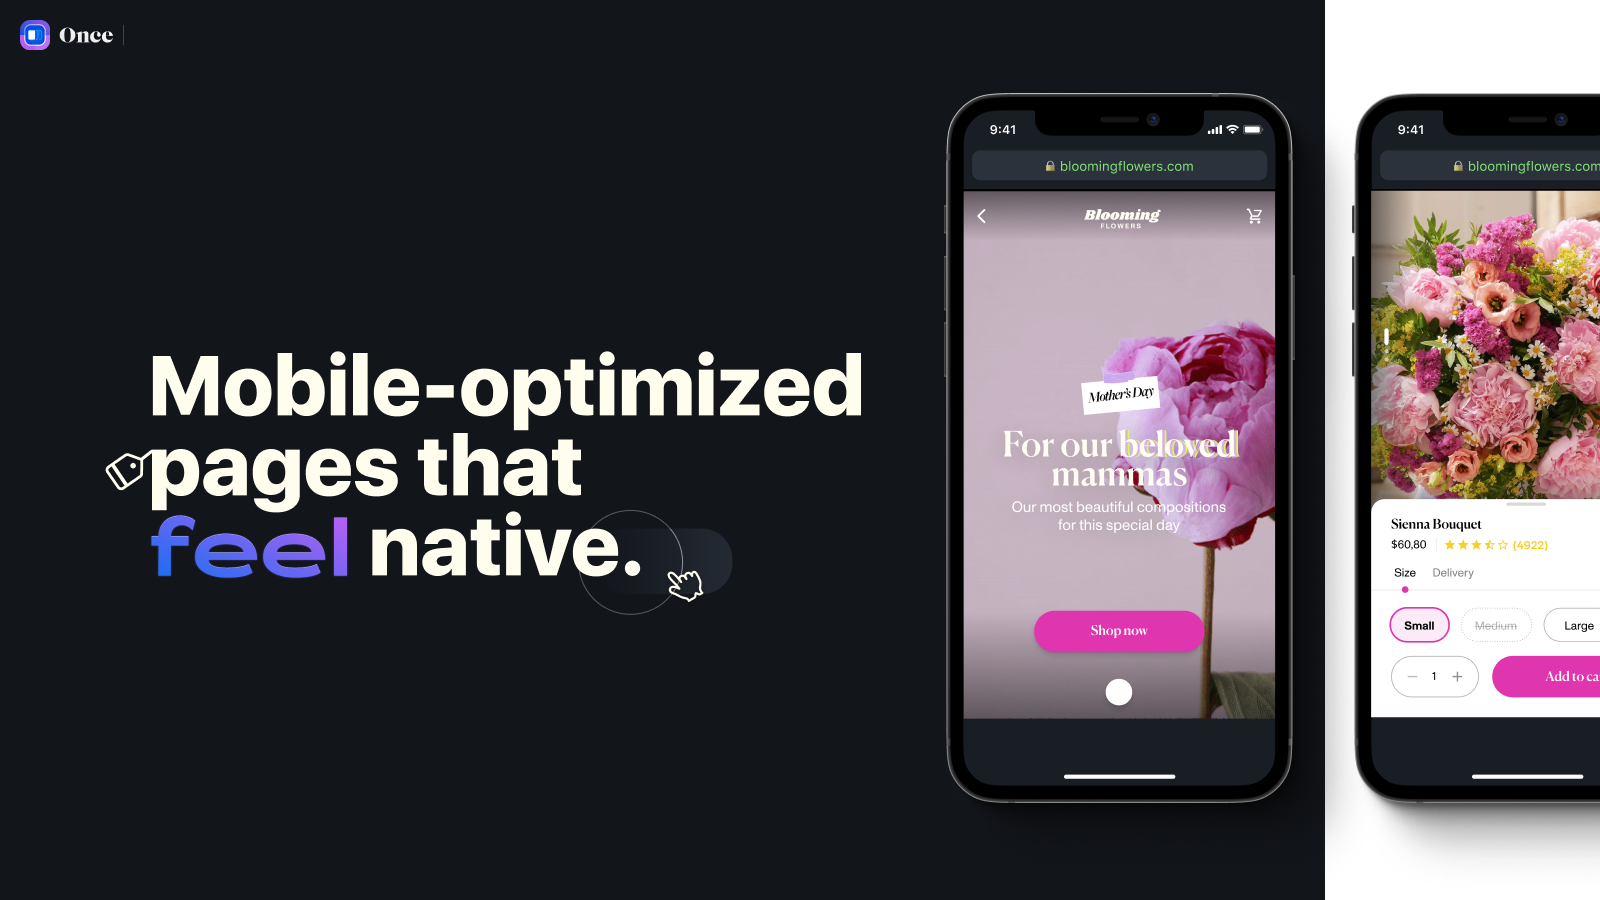 Mobile-optimized pages that feel native